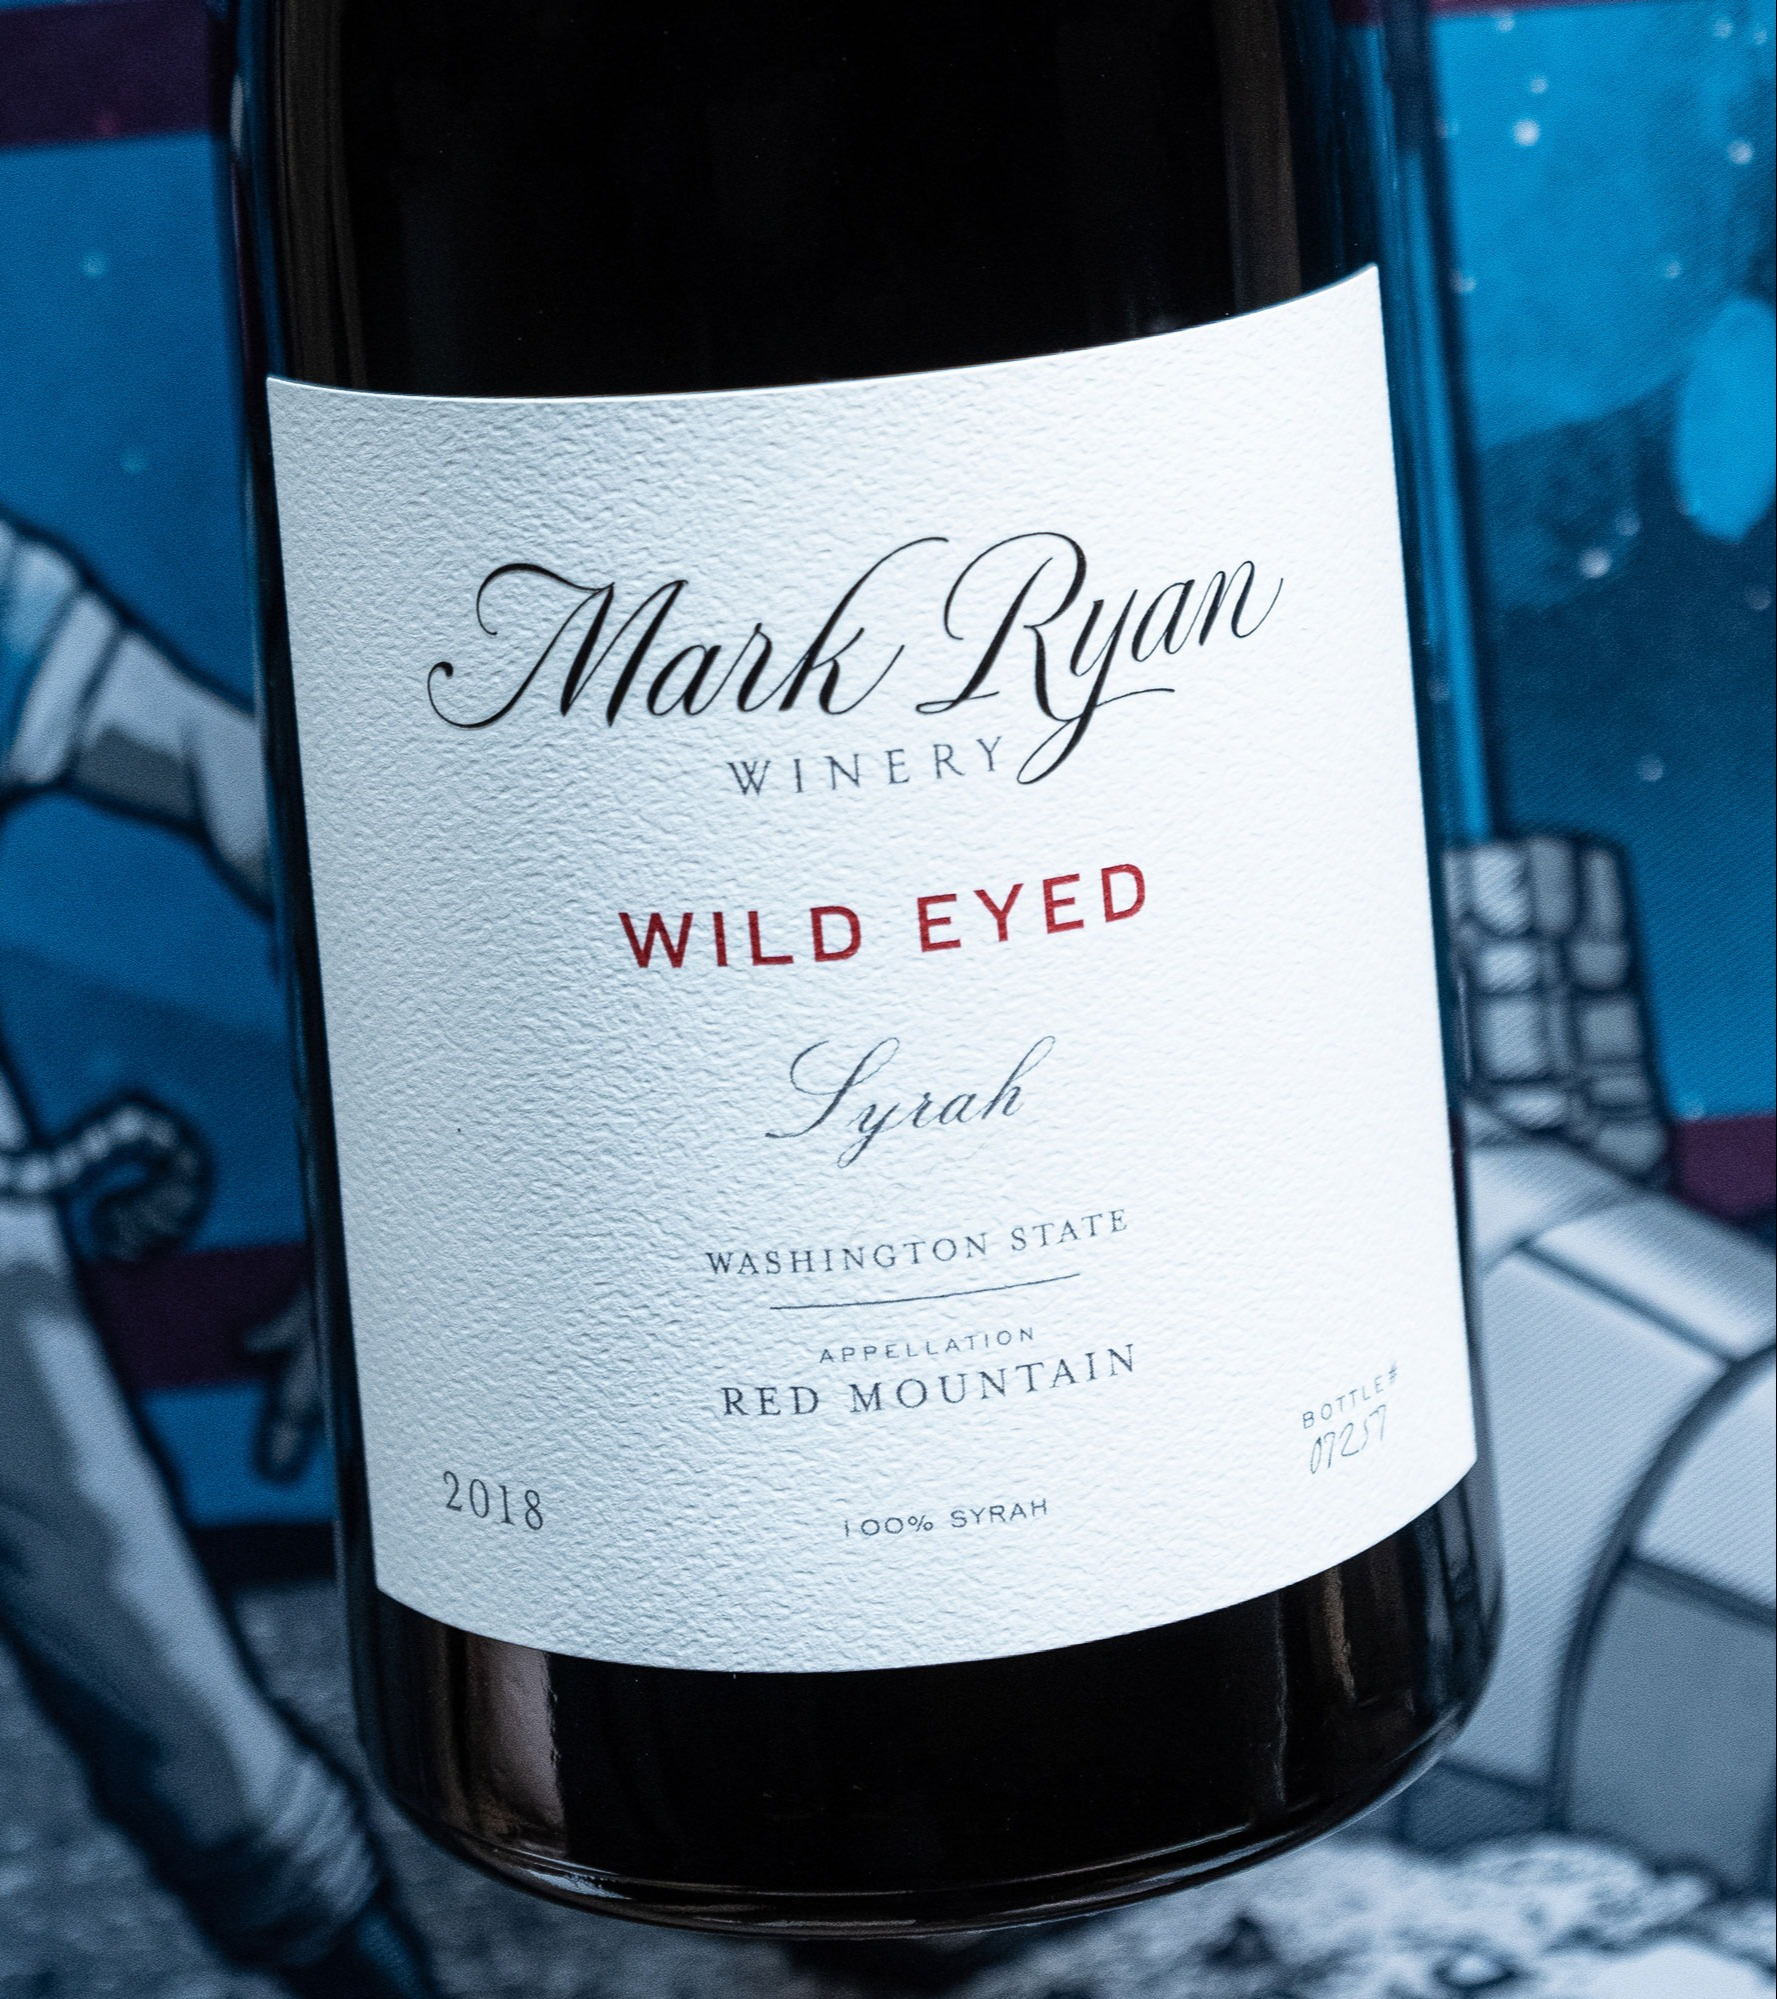 Bottle of Wild Eyed